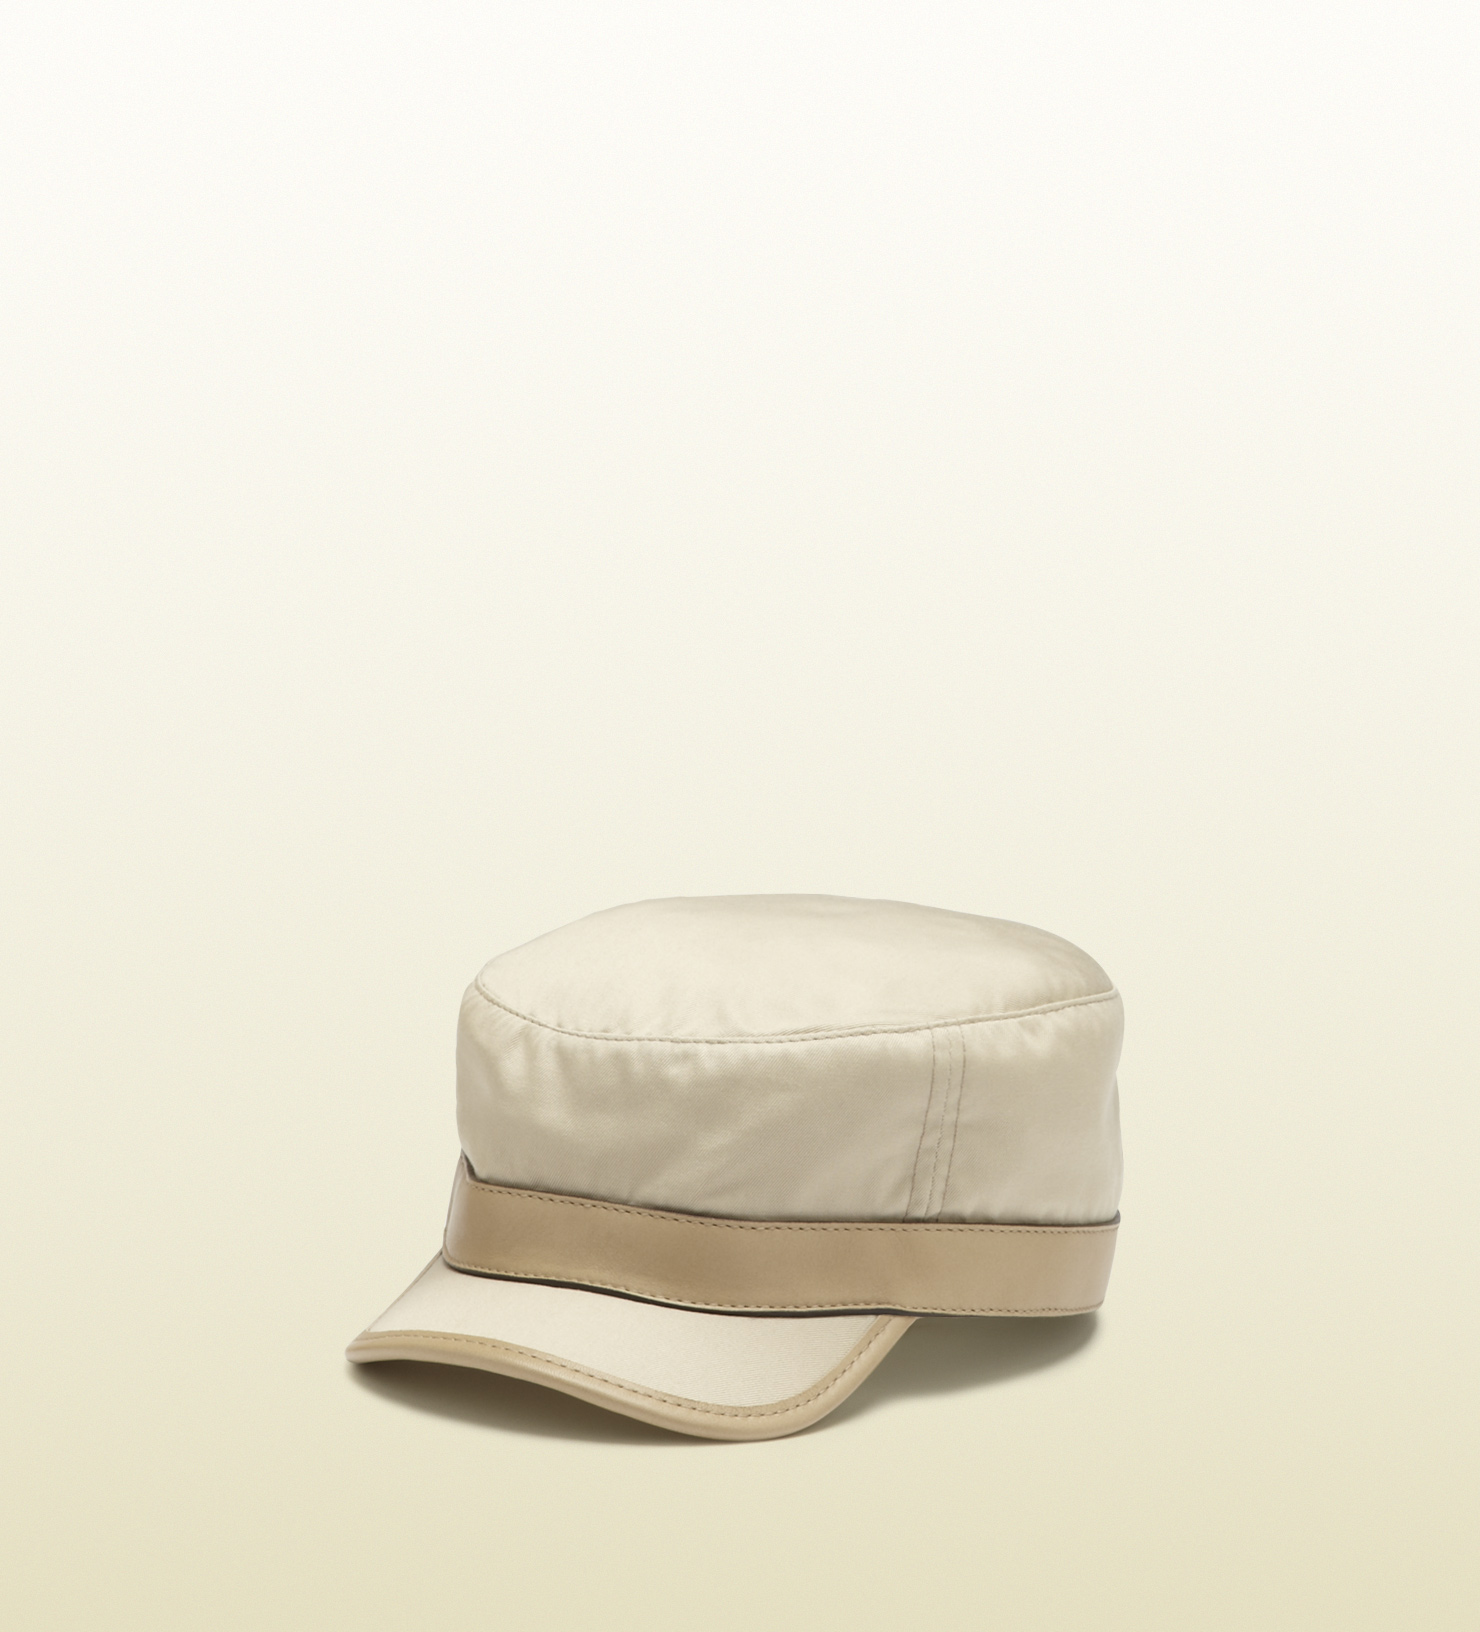 Lyst - Gucci Pale Khaki Cotton Army Hat in Natural for Men 038ad9ccd7b